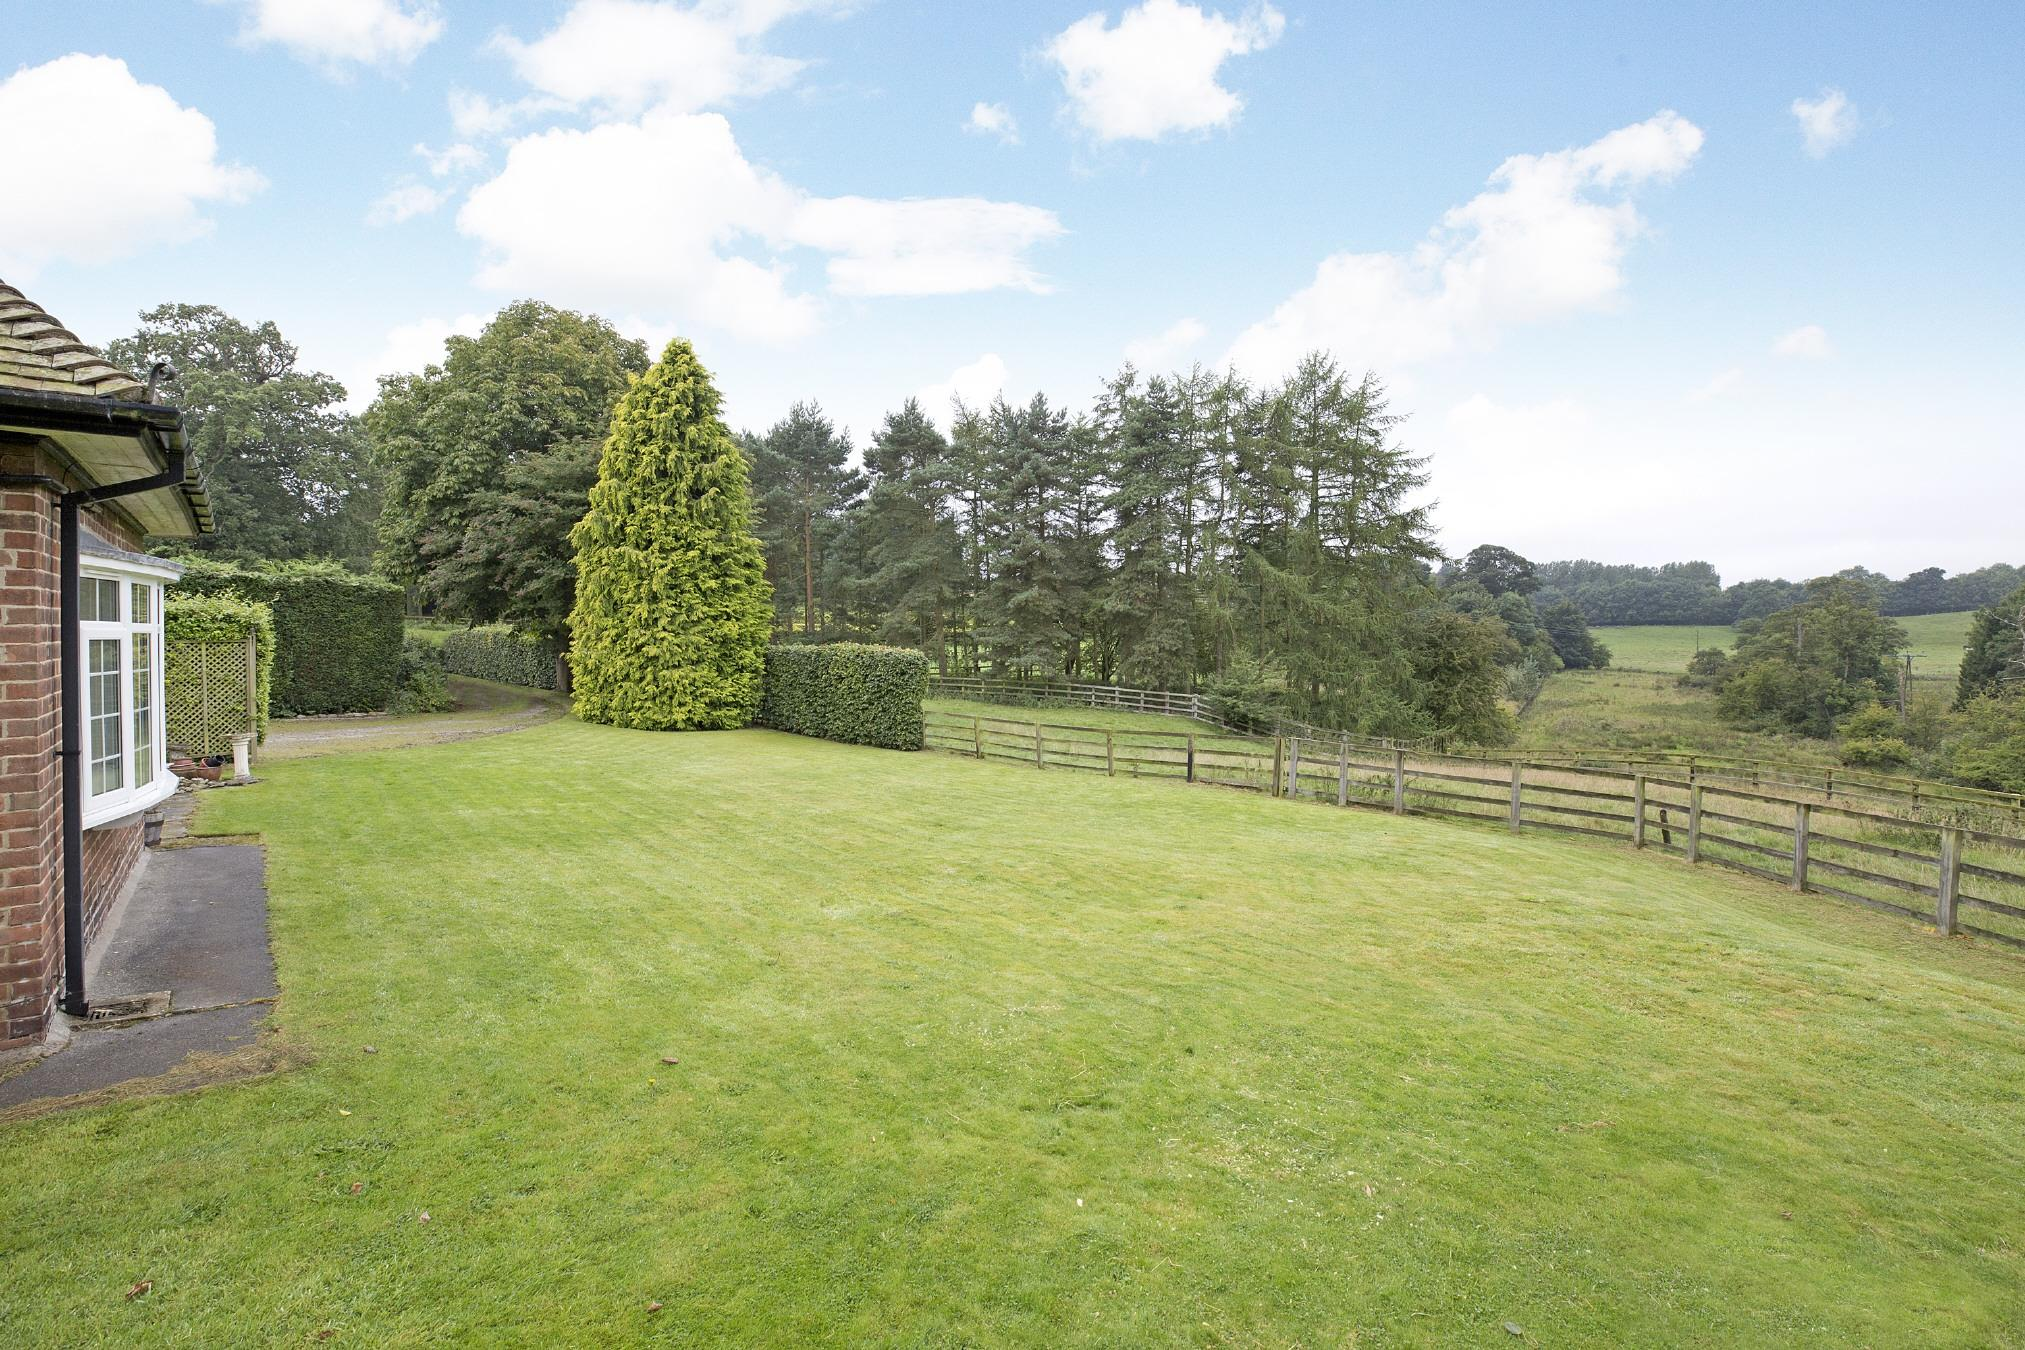 4 bedroom detached house for sale in copgrove harrogate north